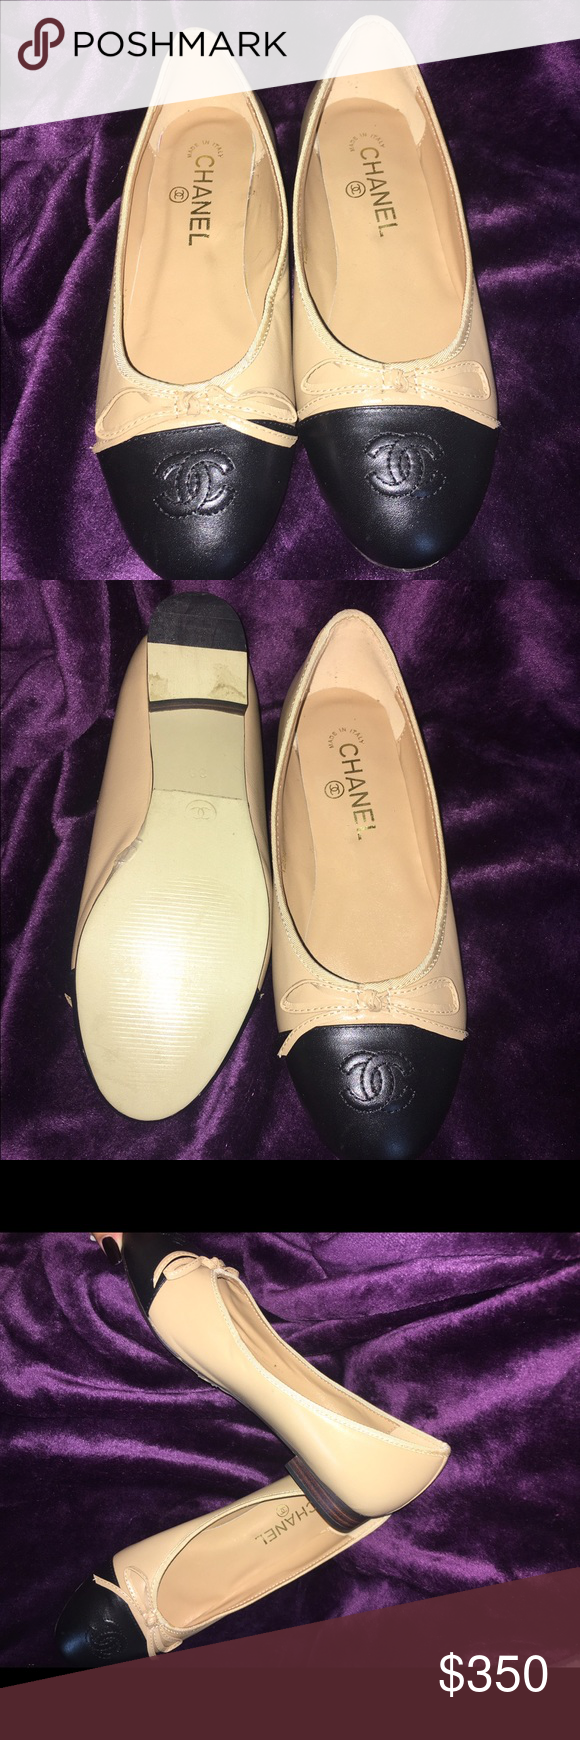 Chanel Flats Worn Once Has Protective Plastic On Soles That May Be Inside Kamelia Beige 39 Removed Size 8